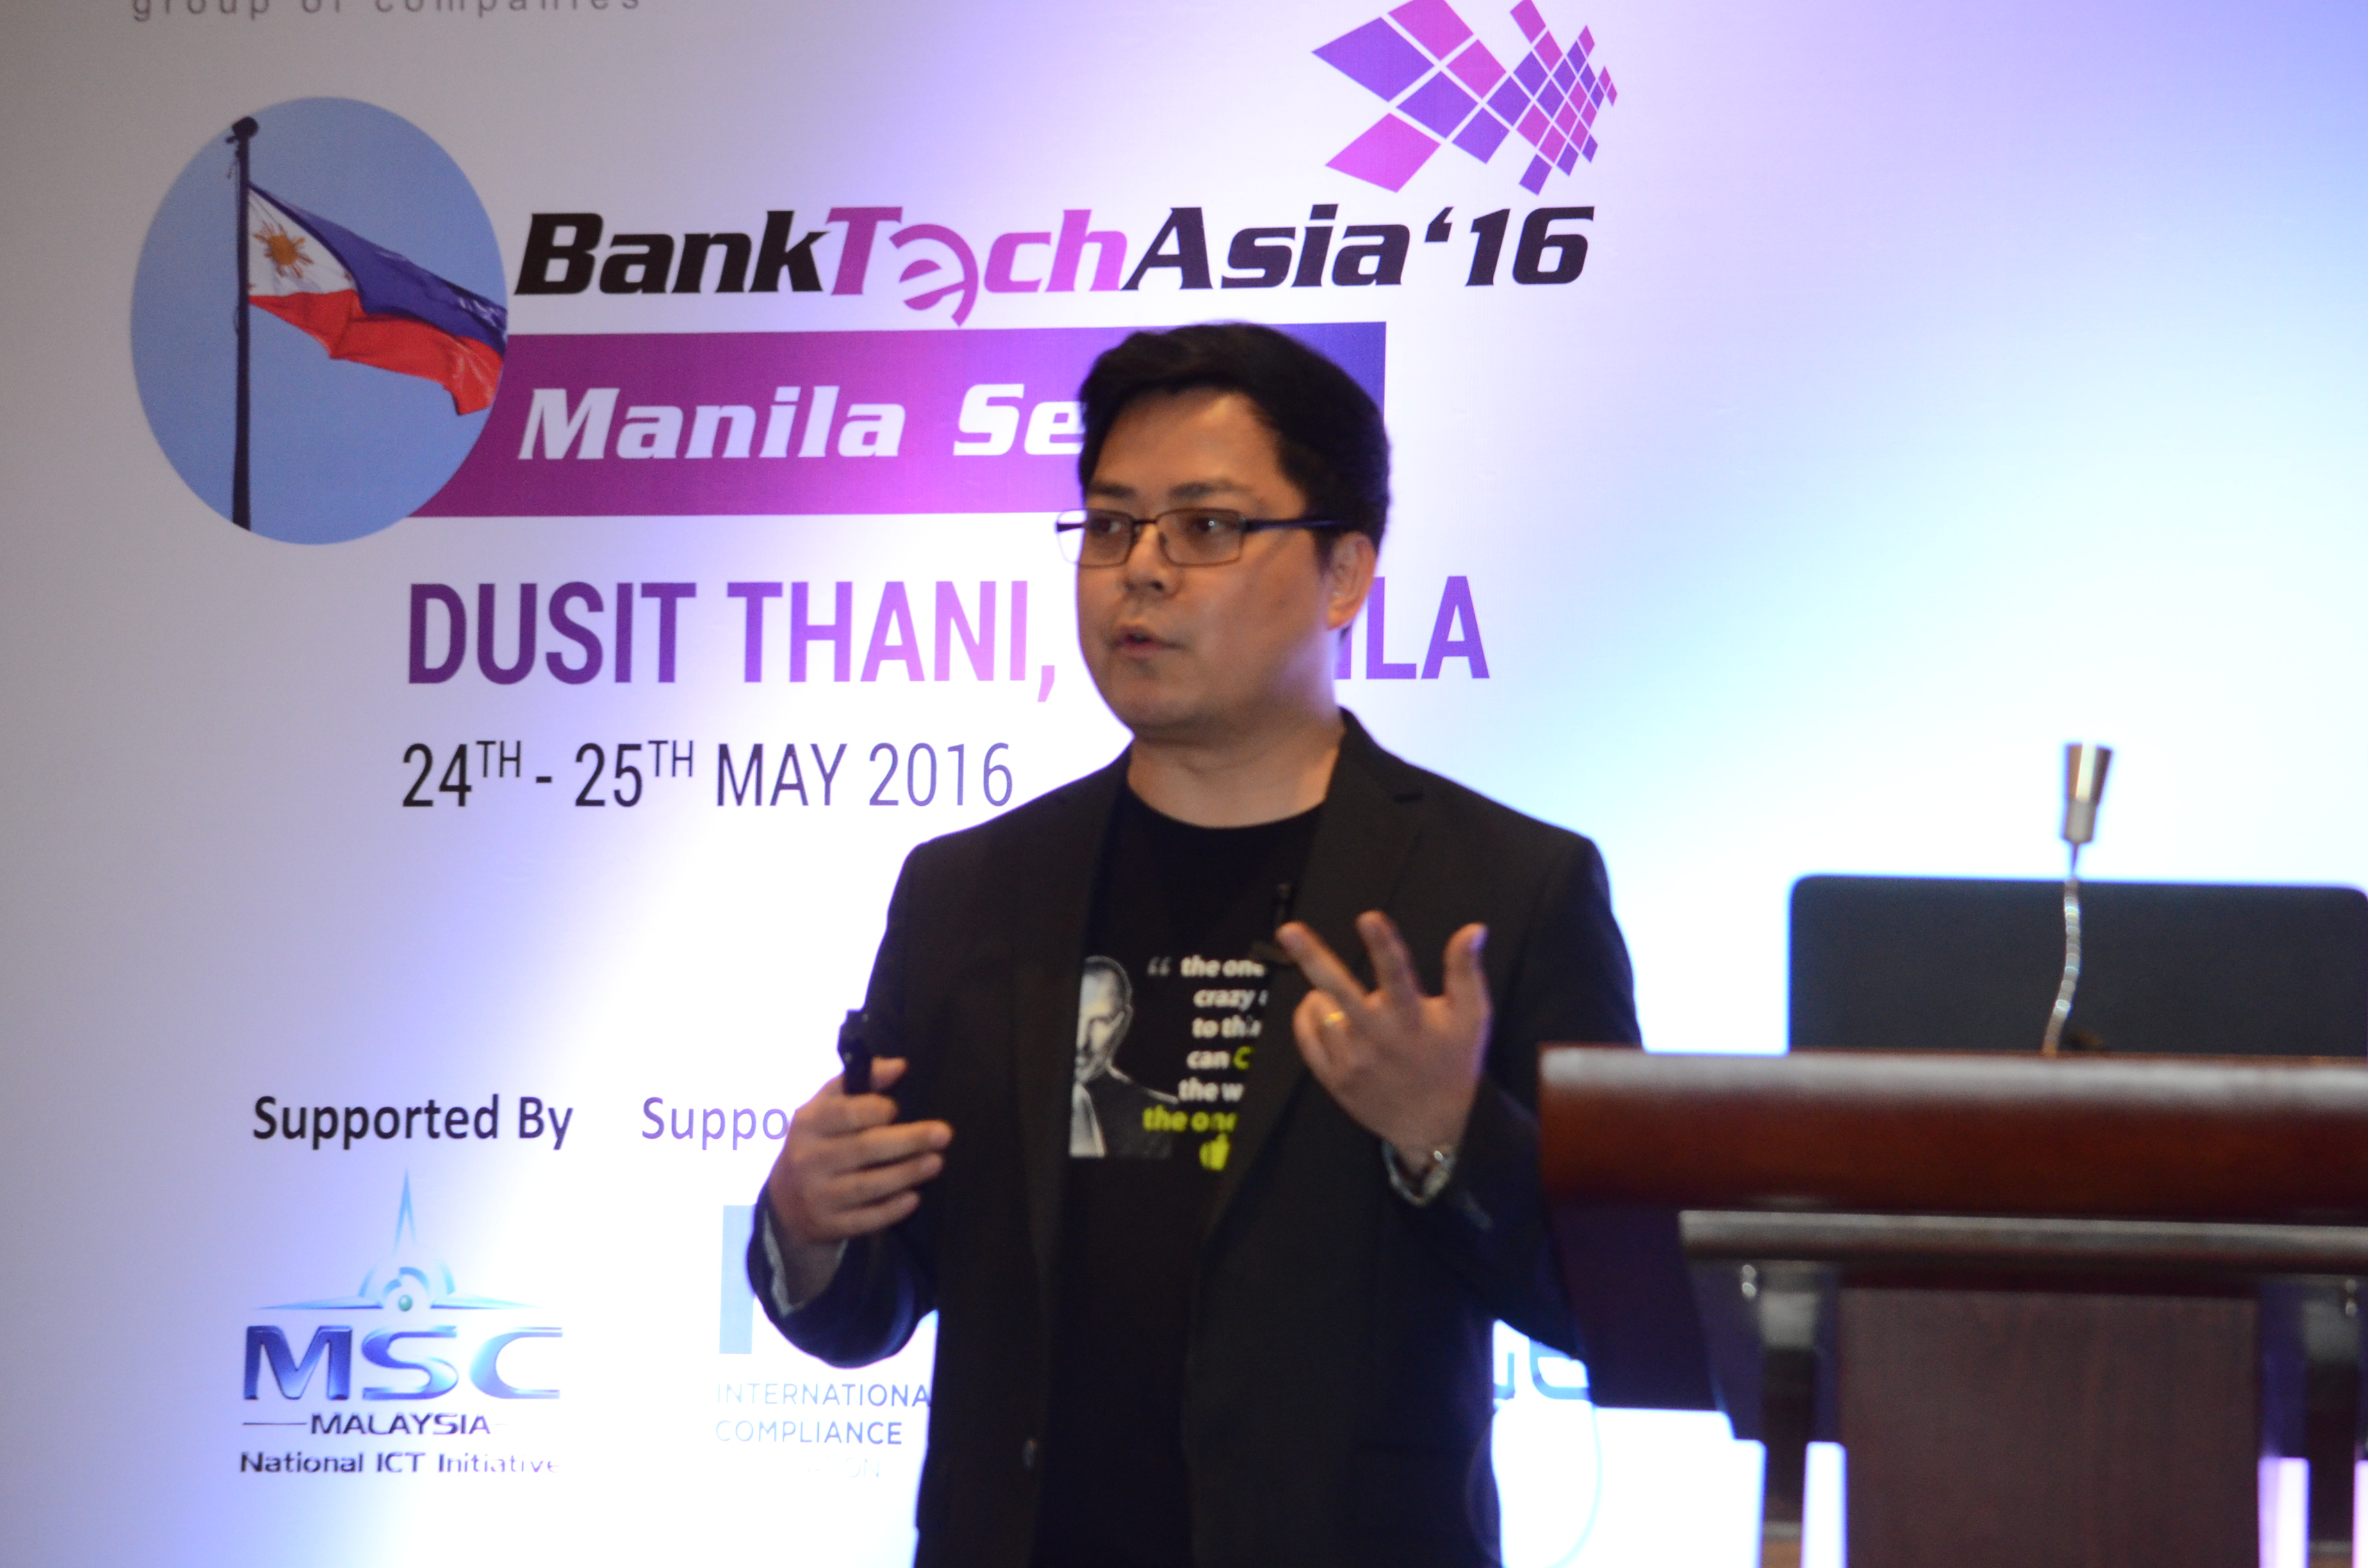 How Financial Technology Companies (Fintech) can Complement Bank Services, Products